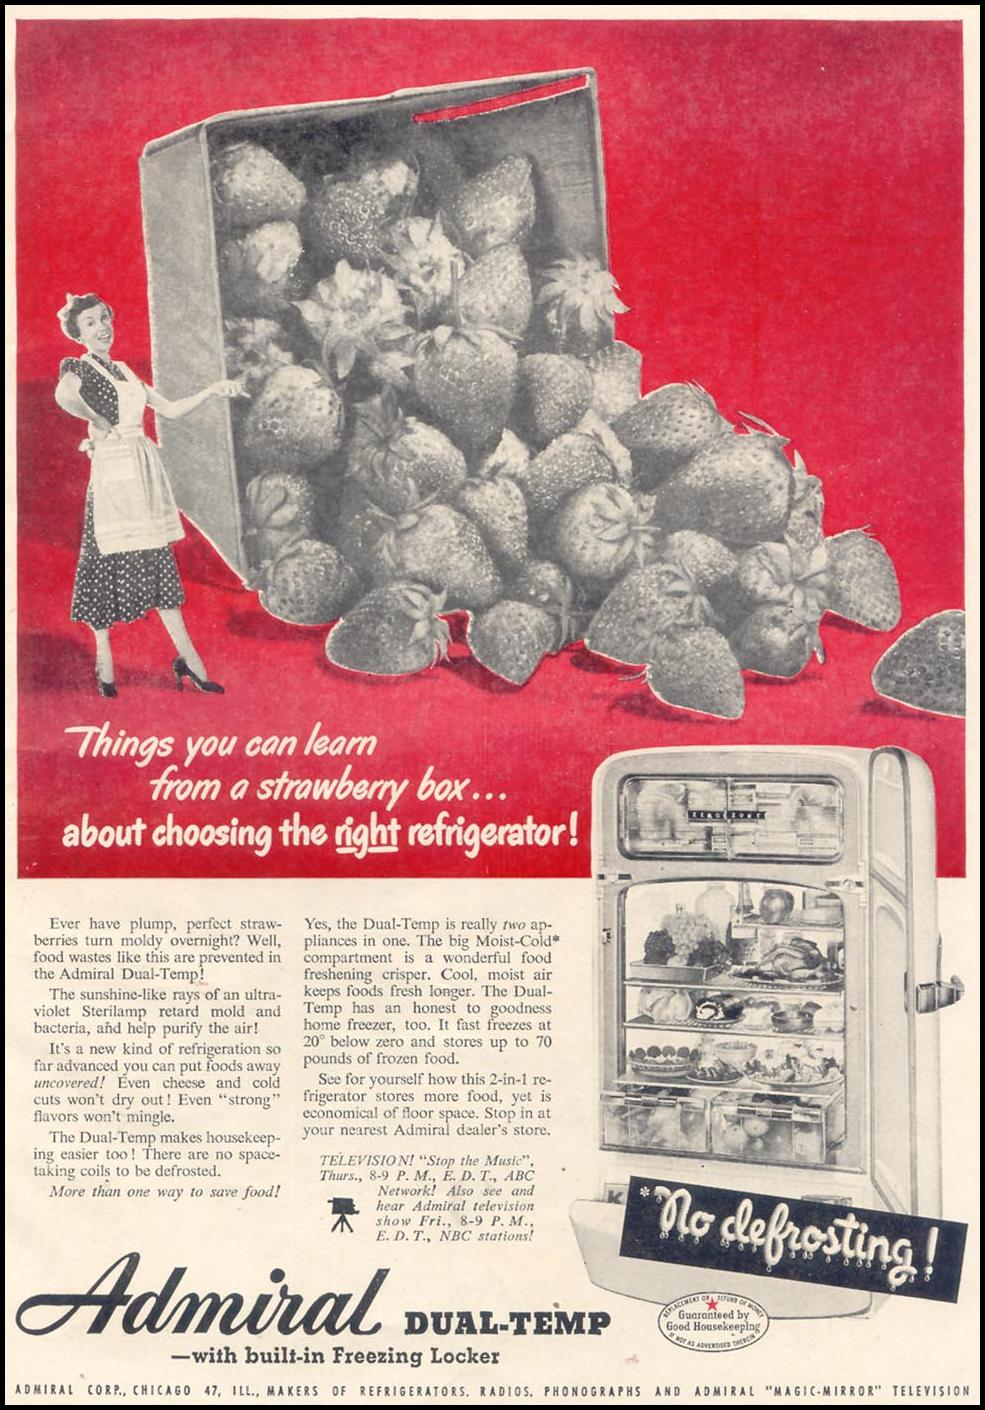 ADMIRAL DUAL-TEMP REFRIGERATORS GOOD HOUSEKEEPING 07/01/1949 p. 19